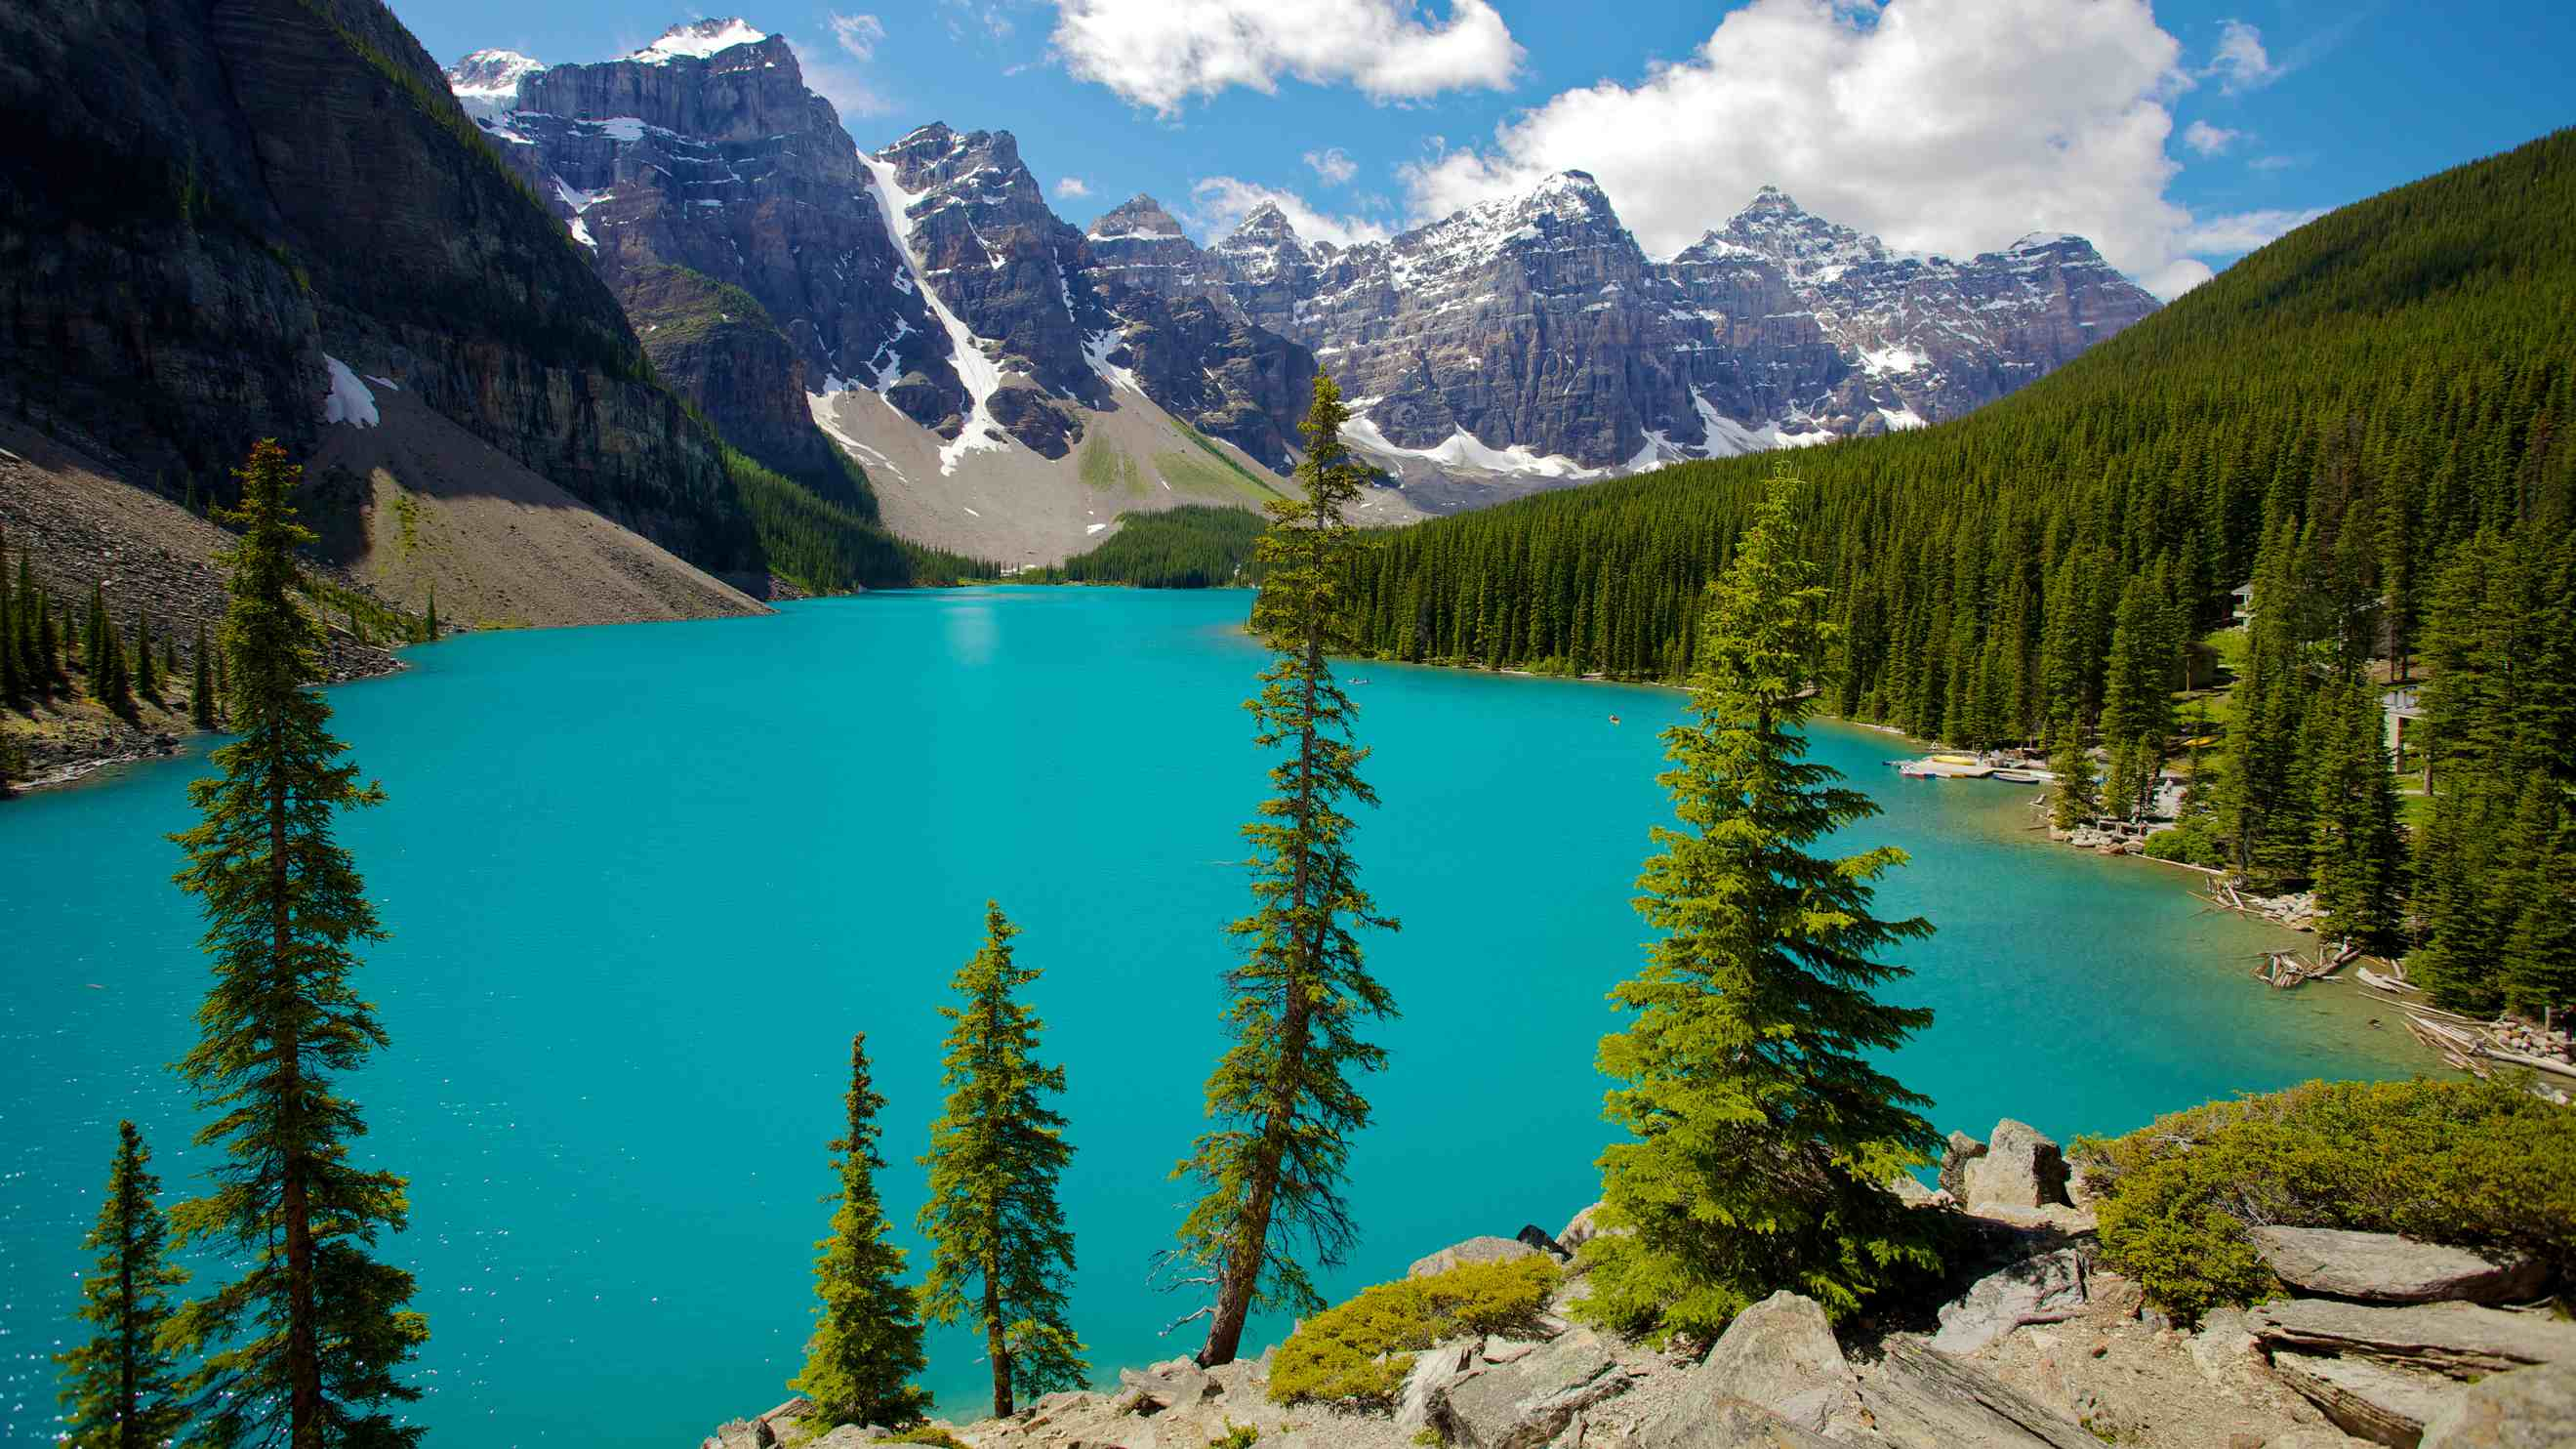 New York to Alberta Canada (Banff National Park) $245 RT Nonstop Airfares on WestJet (Flexible Ticket Travel August - April 2021)